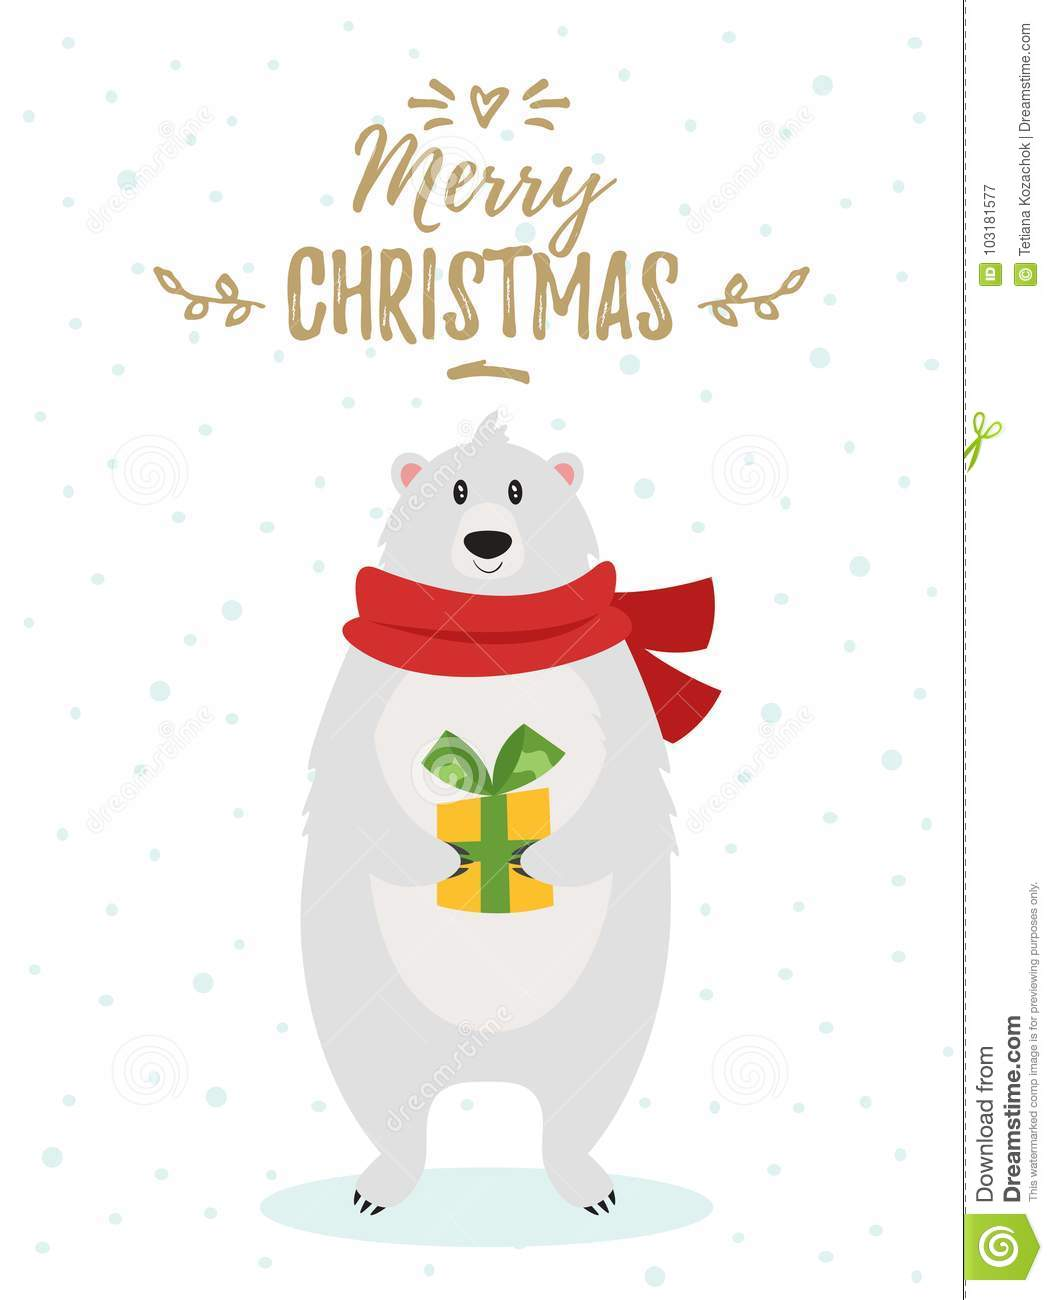 Christmas New Year Greeting Card Stock Vector - Illustration of ...